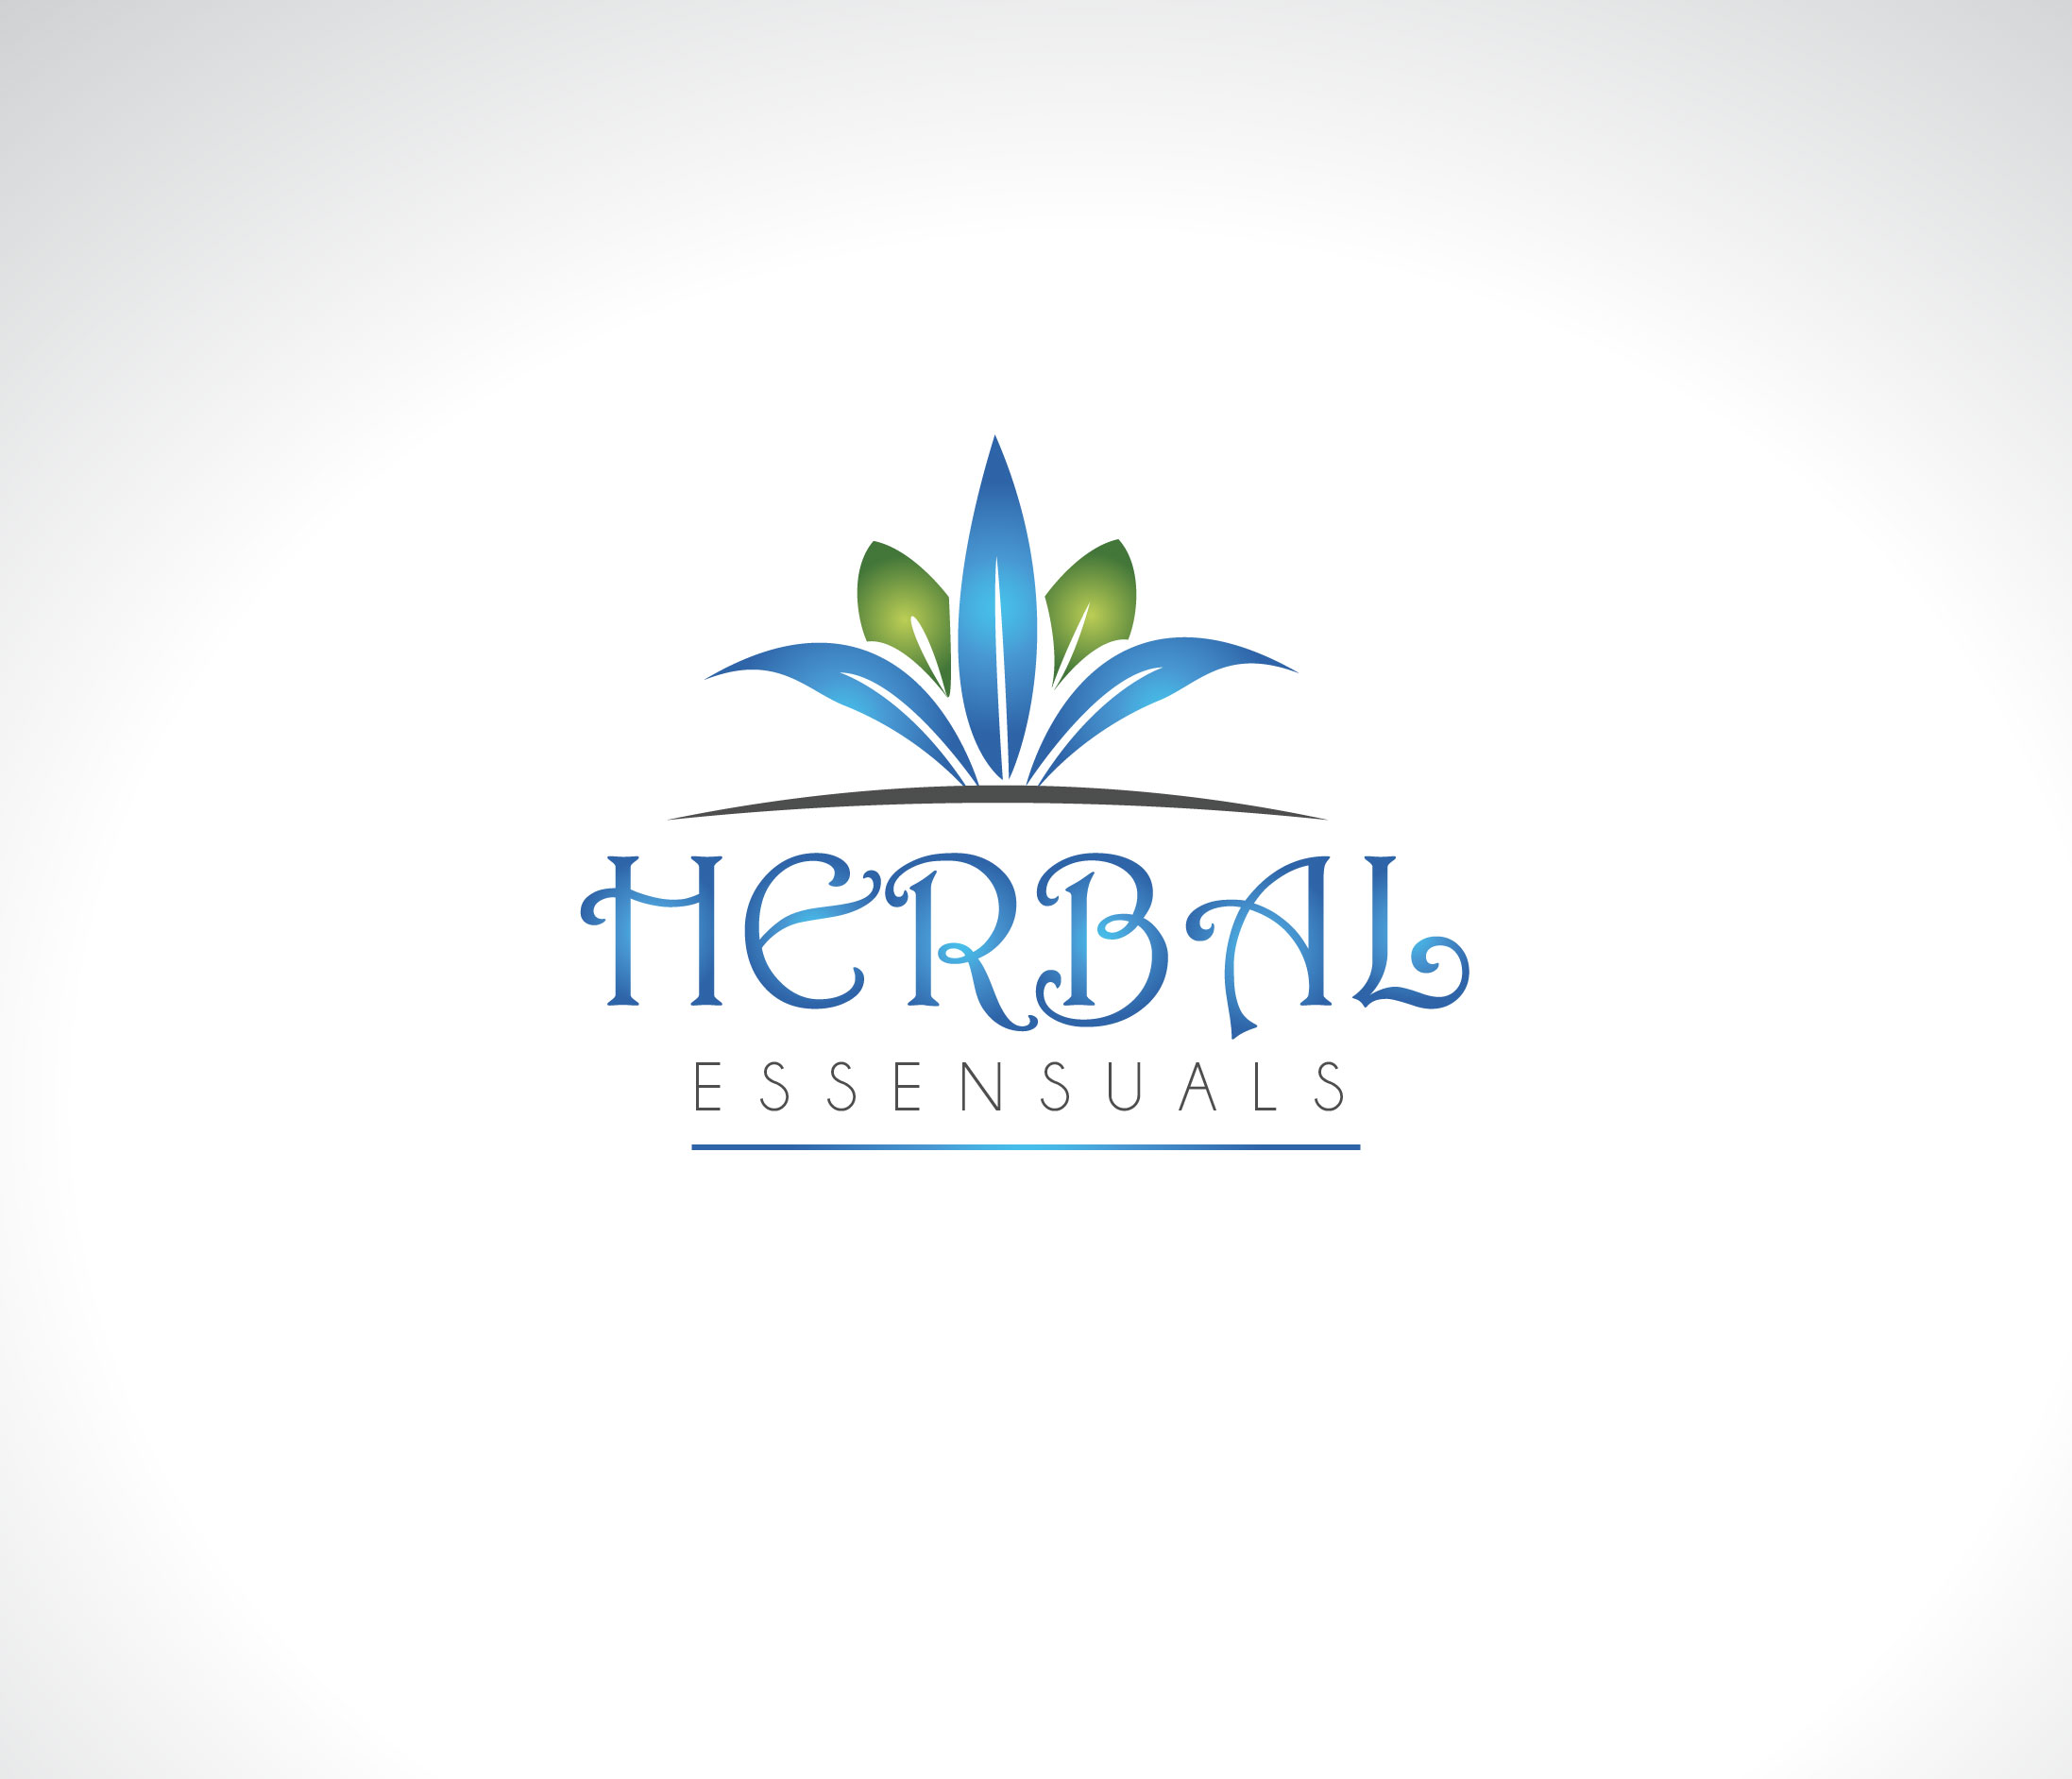 Logo Design by Darina Dimitrova - Entry No. 46 in the Logo Design Contest Captivating Logo Design for Herbal Essensuals.